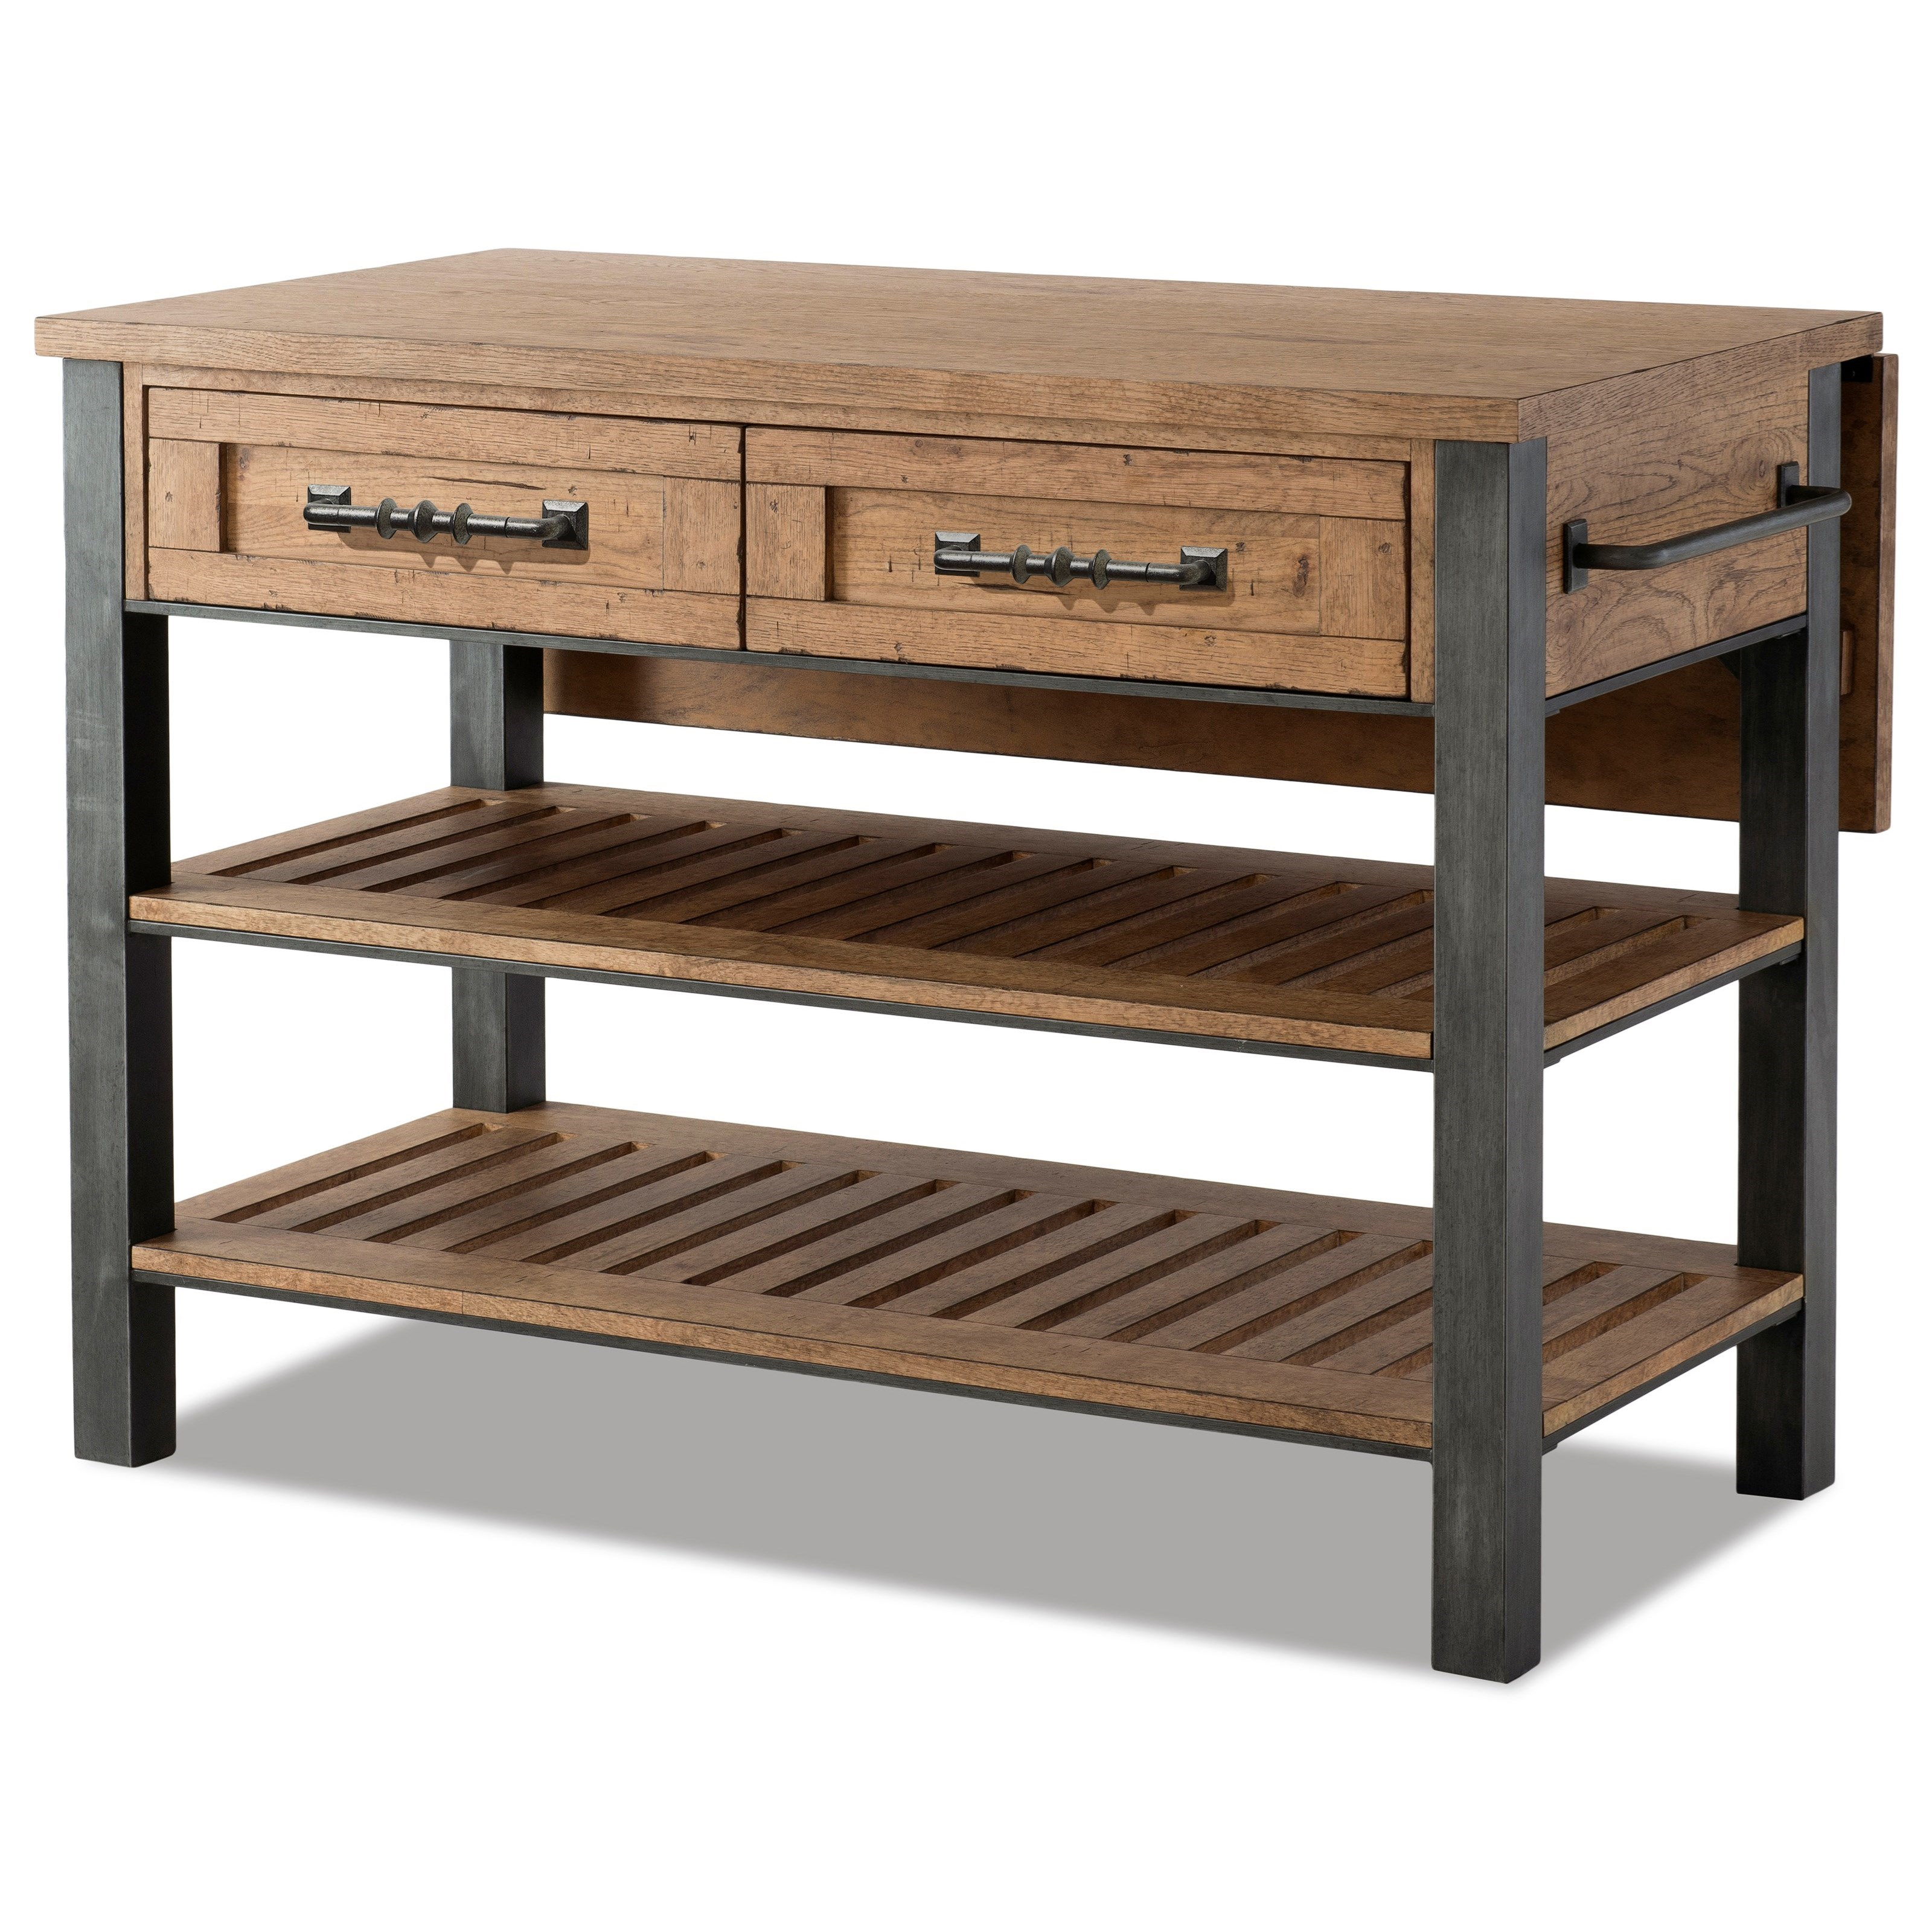 Trisha Yearwood Home Collection By Klaussner Coming Home Reunion Kitchen Island With Drop Front